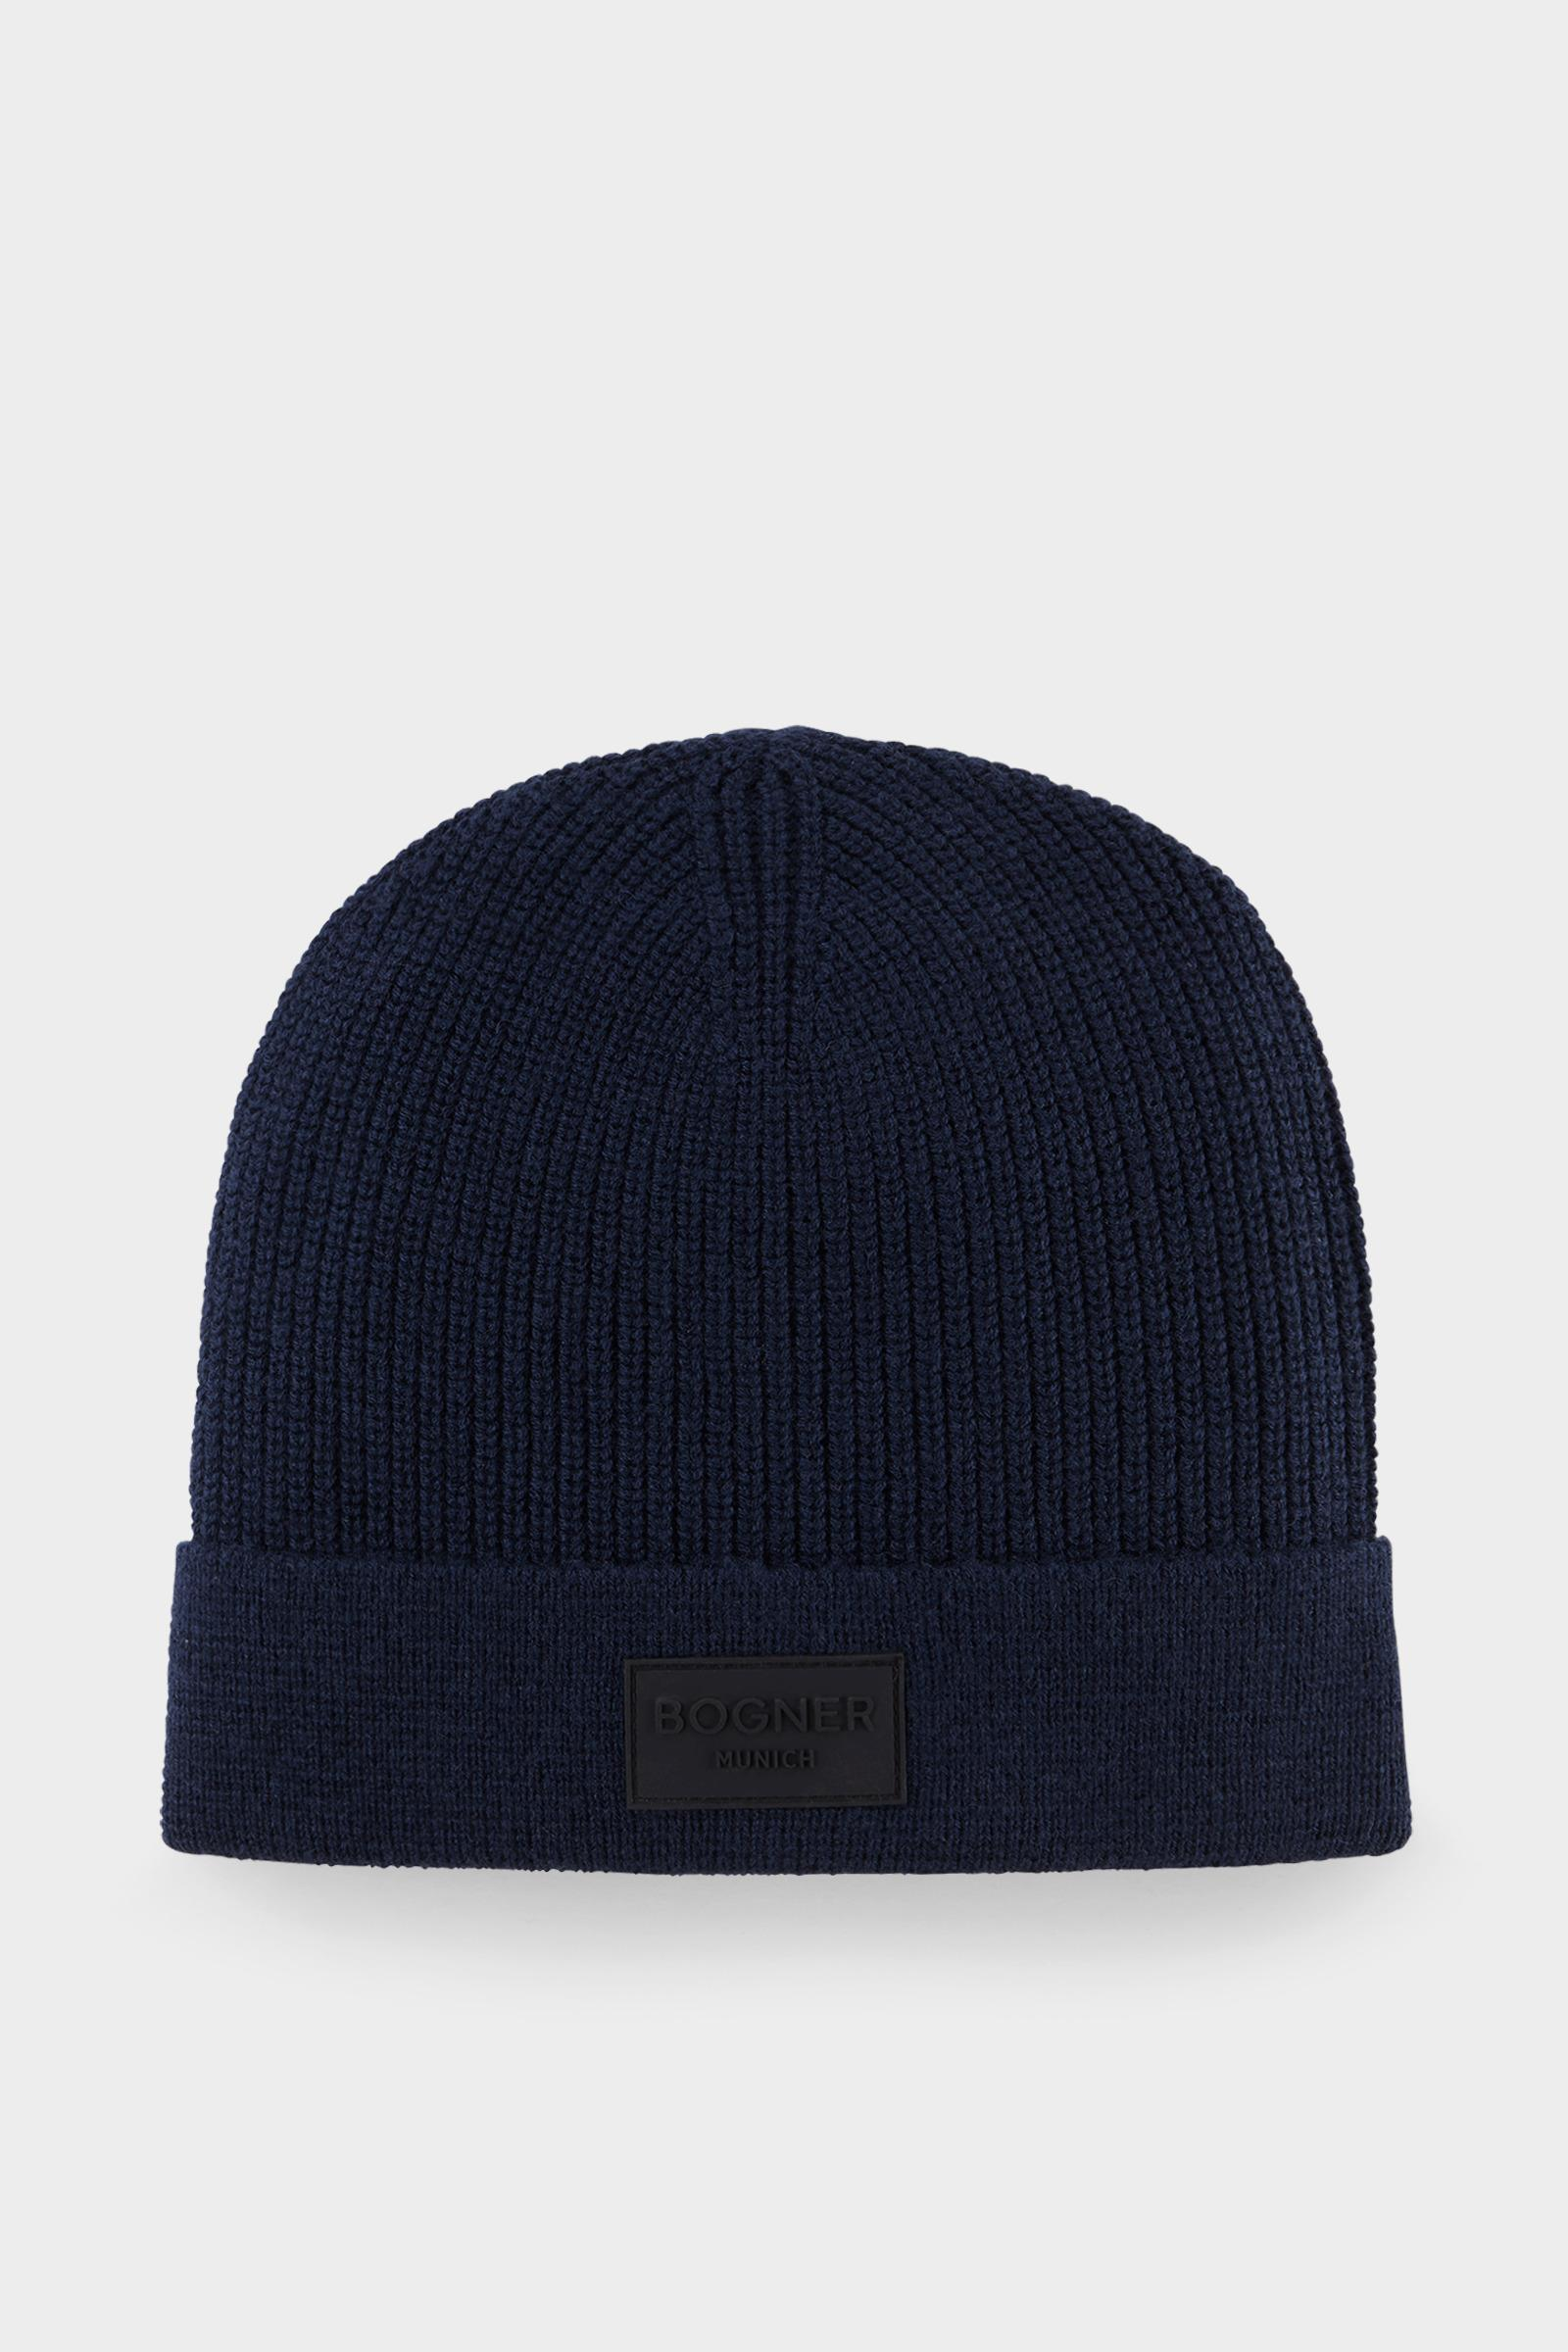 47d53a2cbc3 Bogner Philip Knitted Hat In Navy Blue in Blue for Men - Lyst